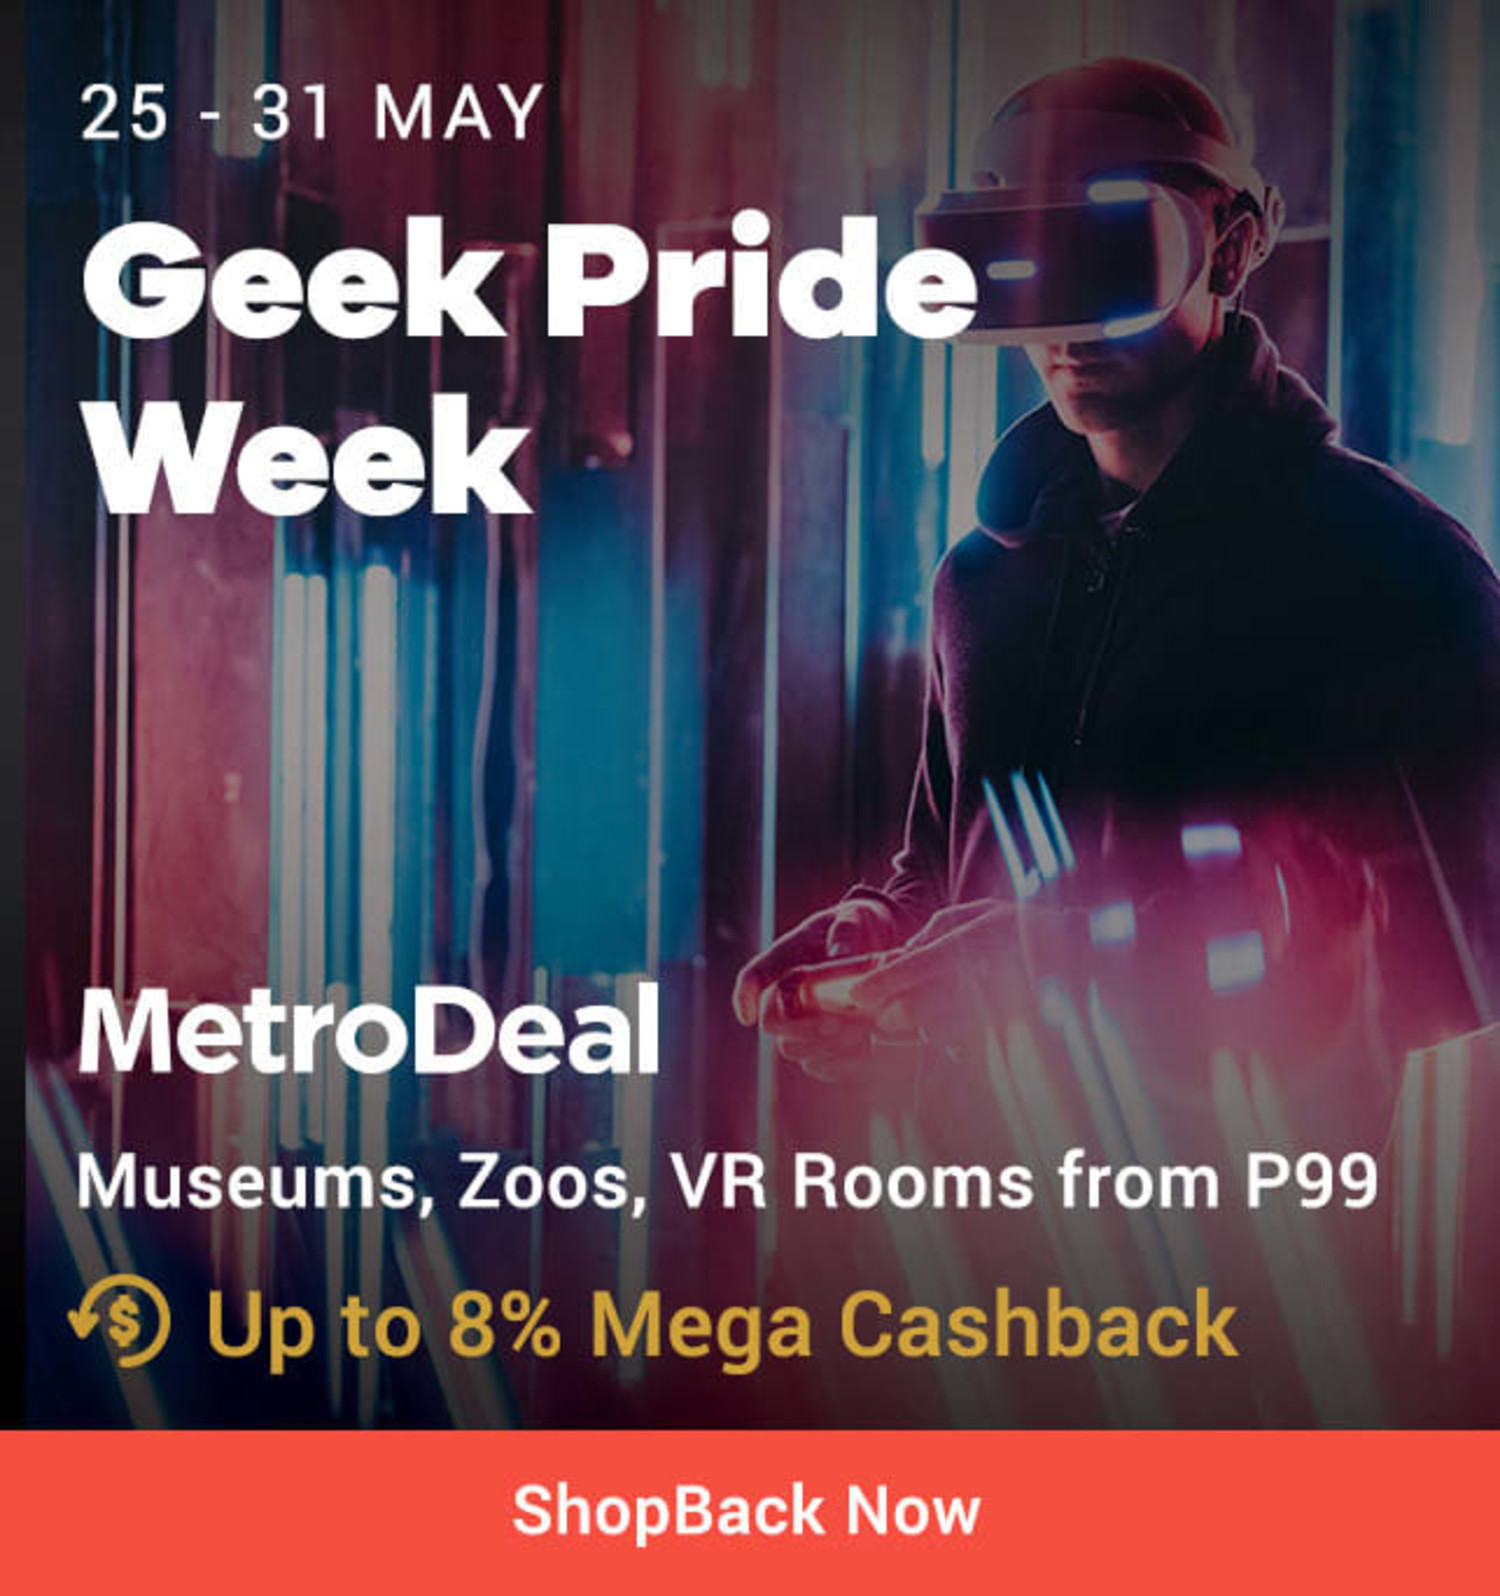 25 - 31 May MetroDeal Geek Pride Week: Museums, Zoos, VR Rooms from P99 + Up to 8% Mega Cashback (was <7%)